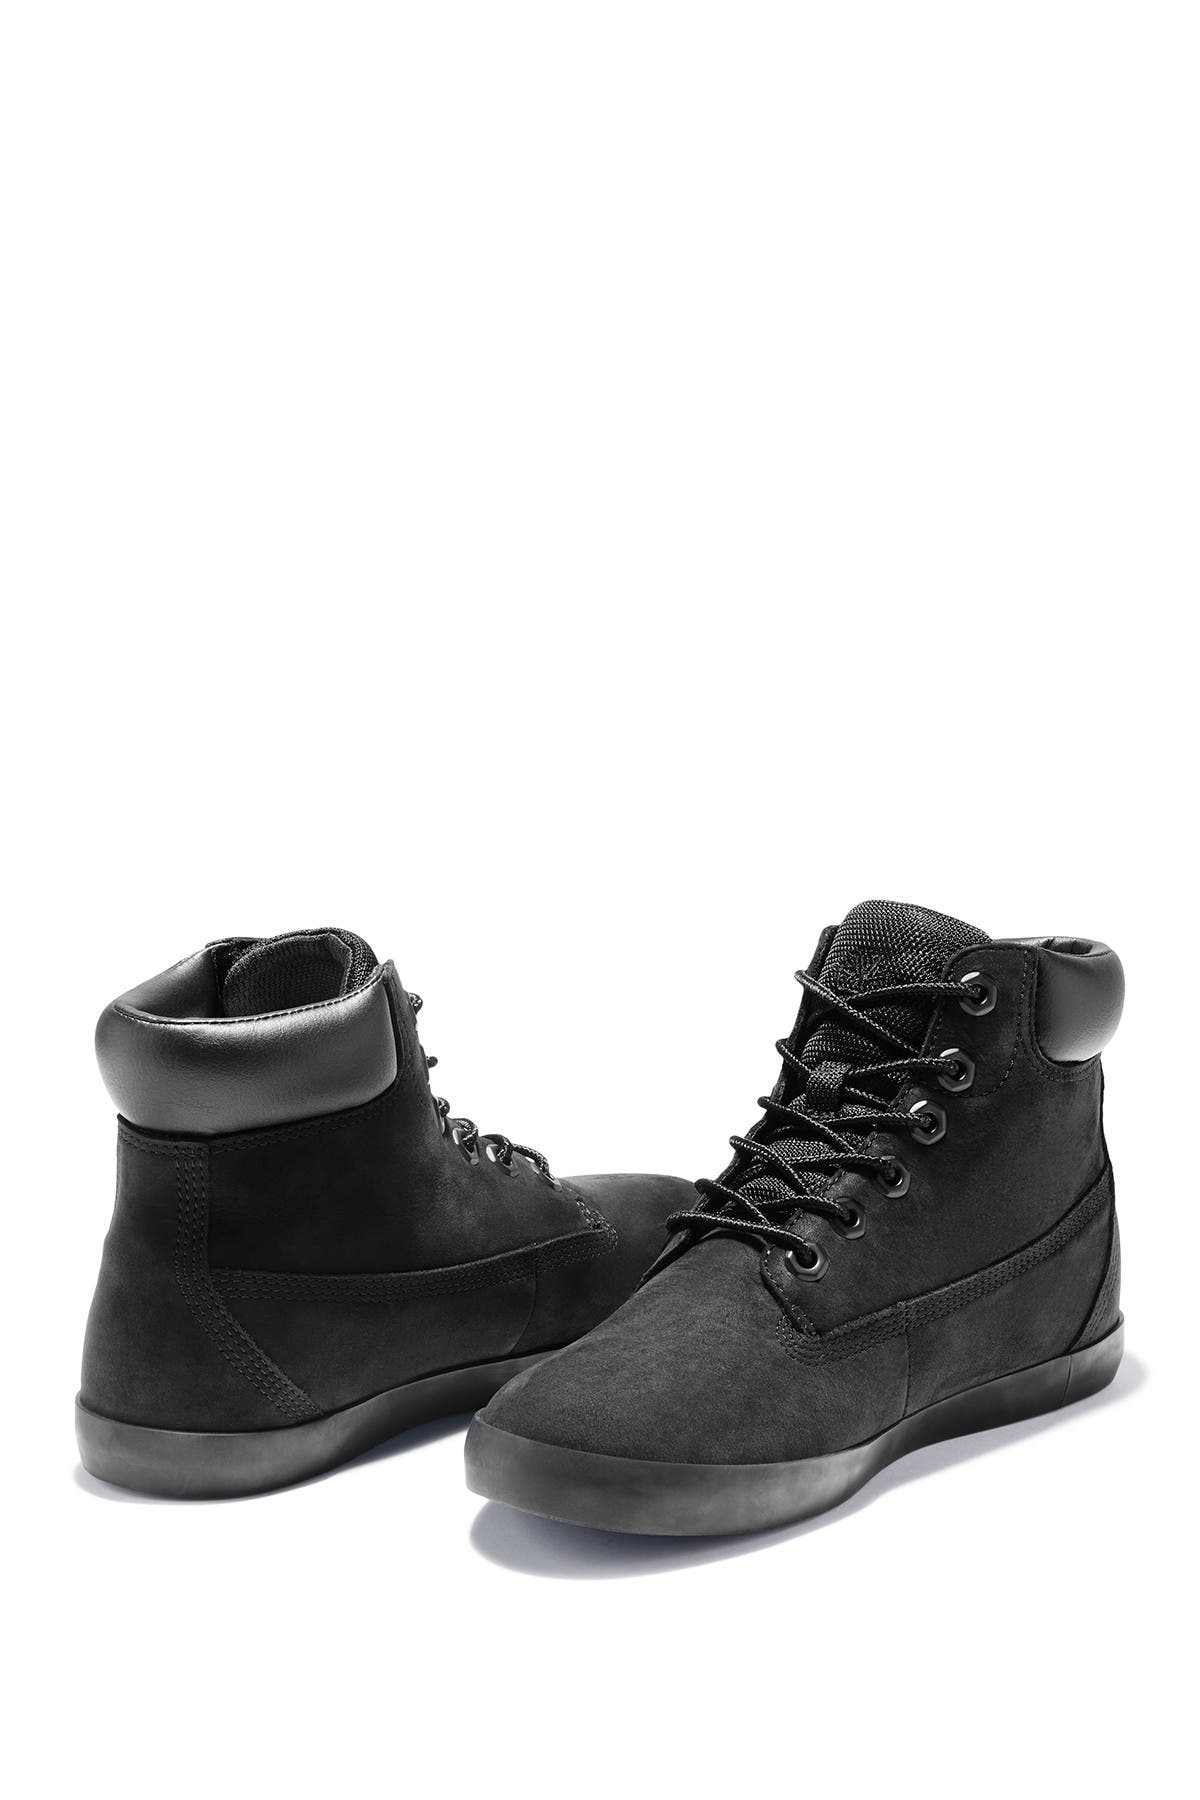 Image of Timberland Flannery High Top Sneaker